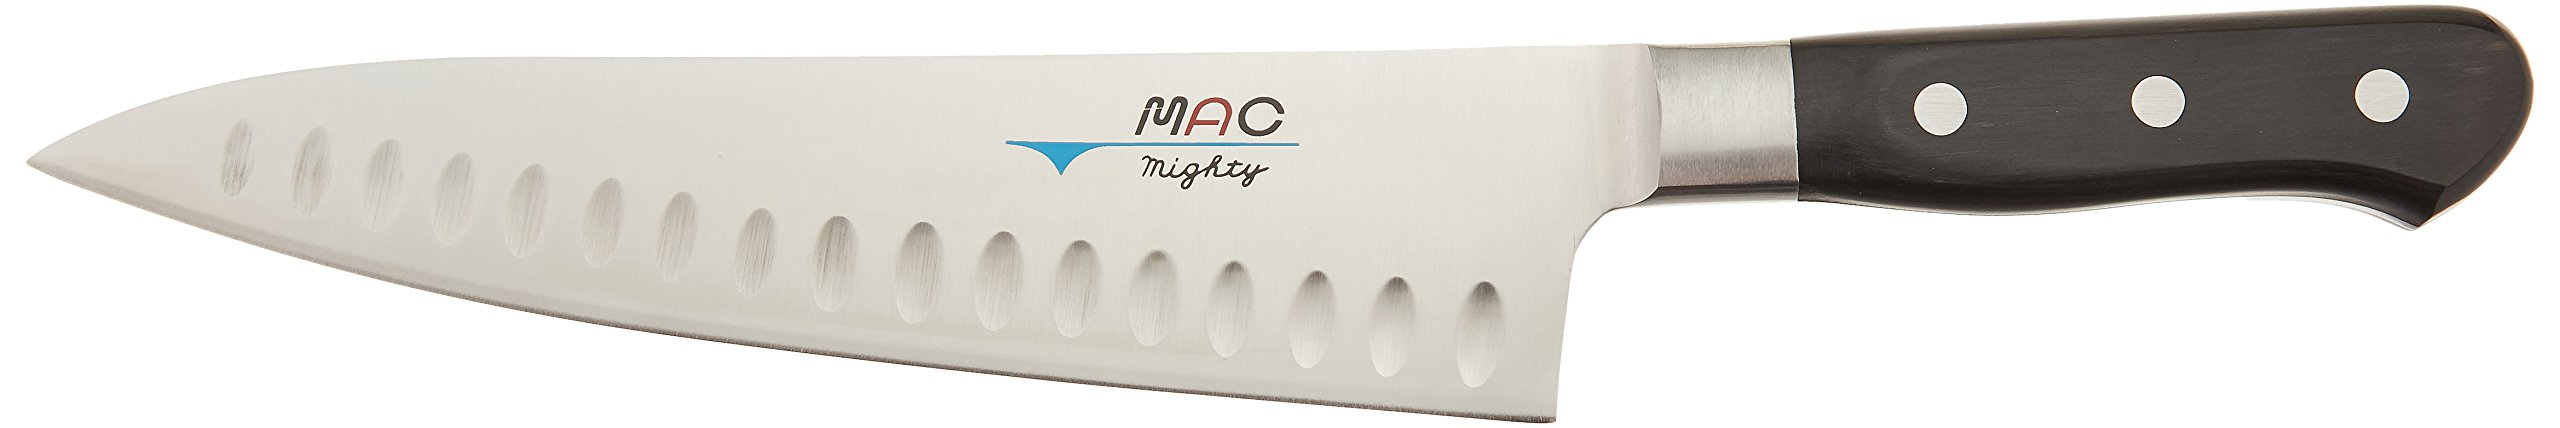 Mac Knife Professional Hollow 8 Inch